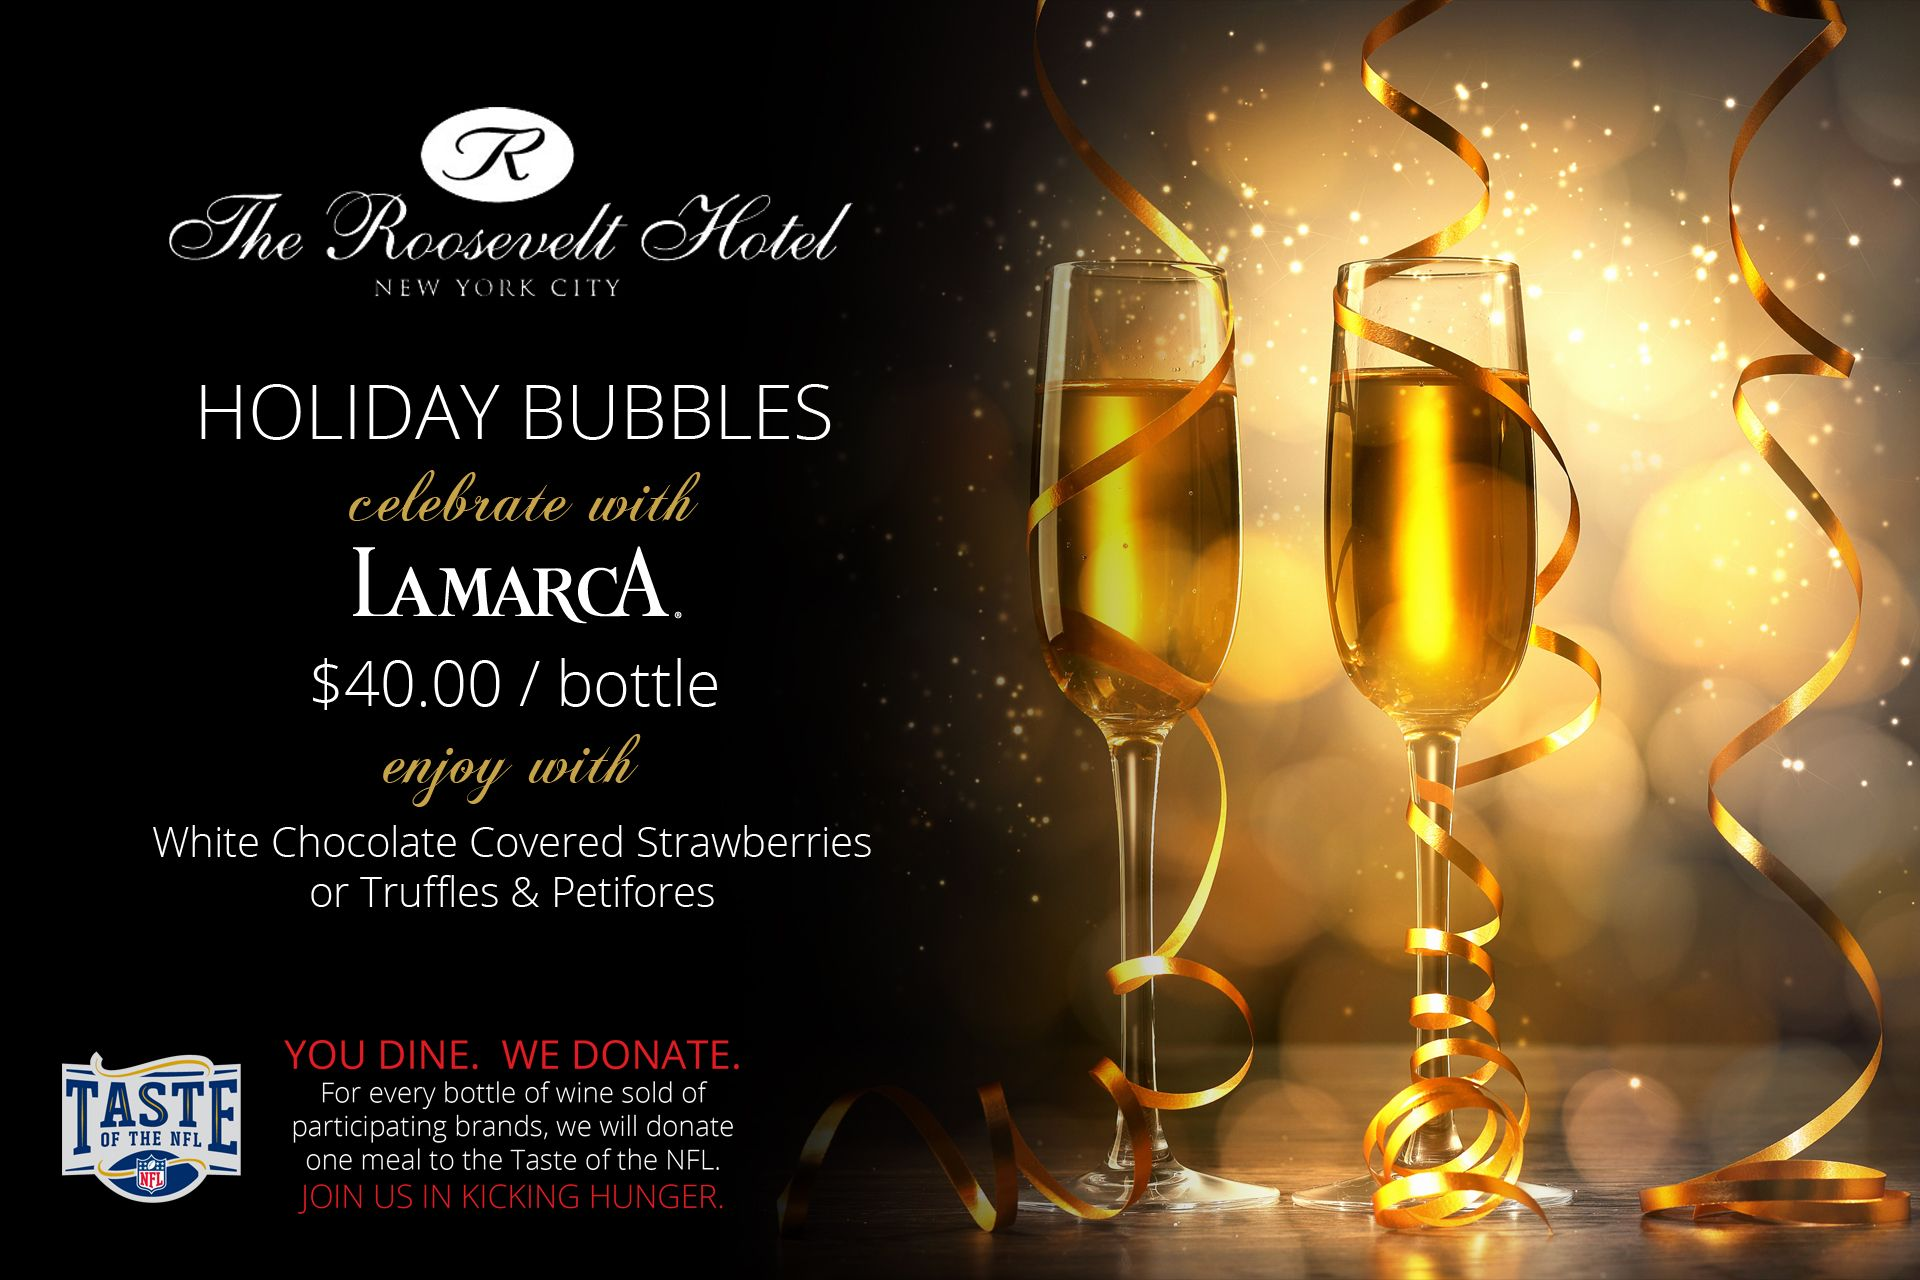 New Year's Eve at The Roosevelt Hotel! | Roosevelt hotel